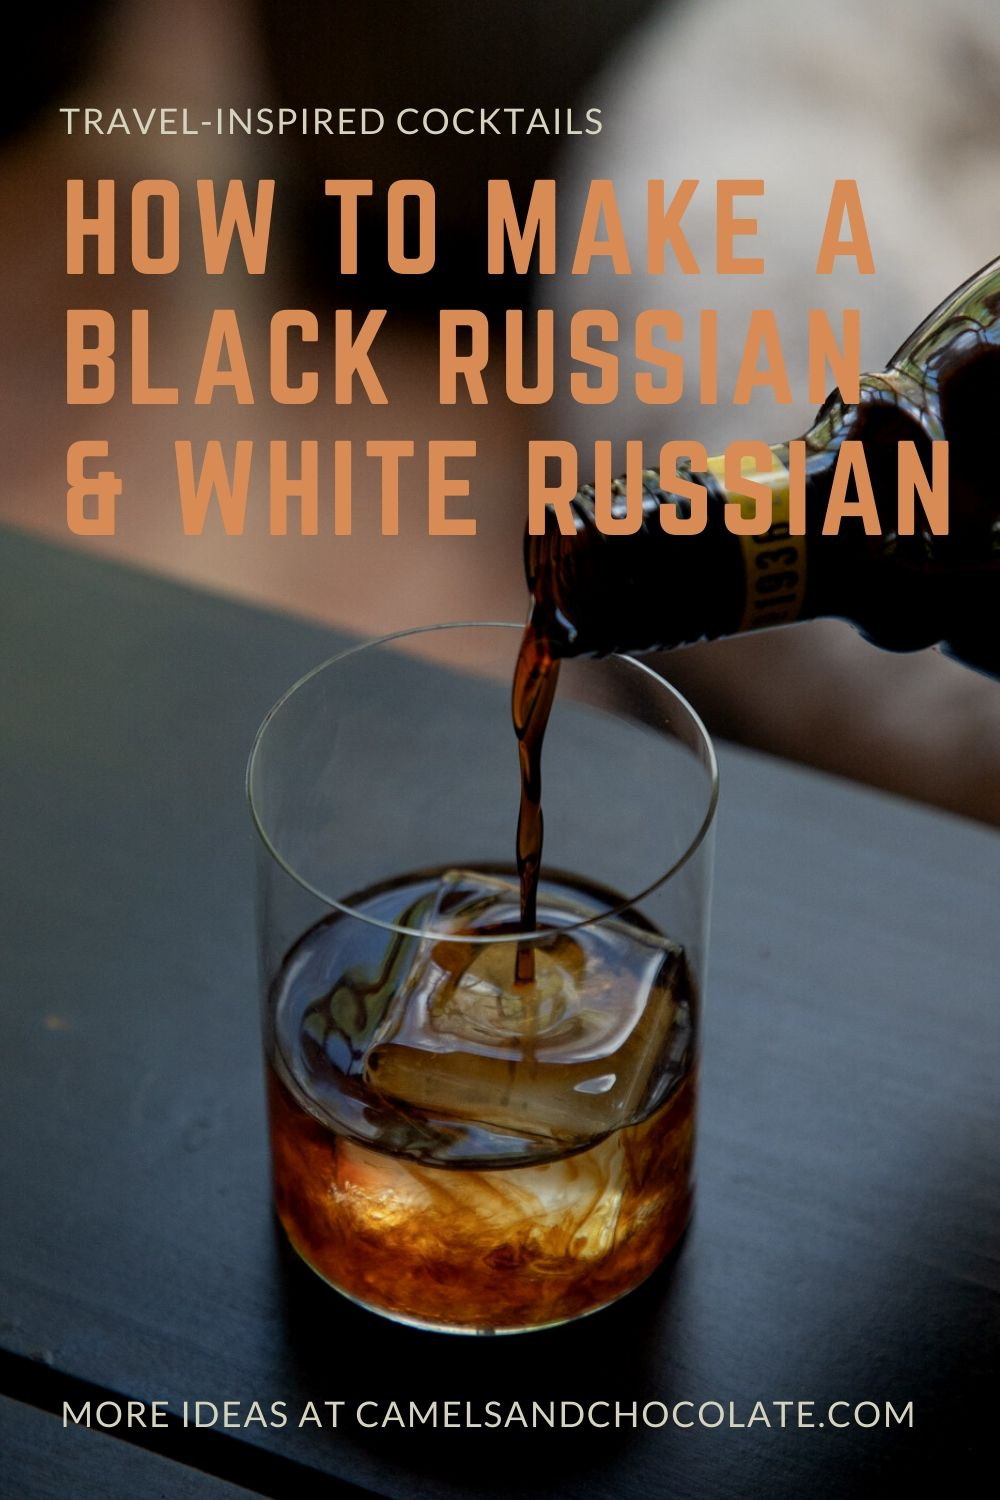 Making a Black Russian: a cocktail recipe